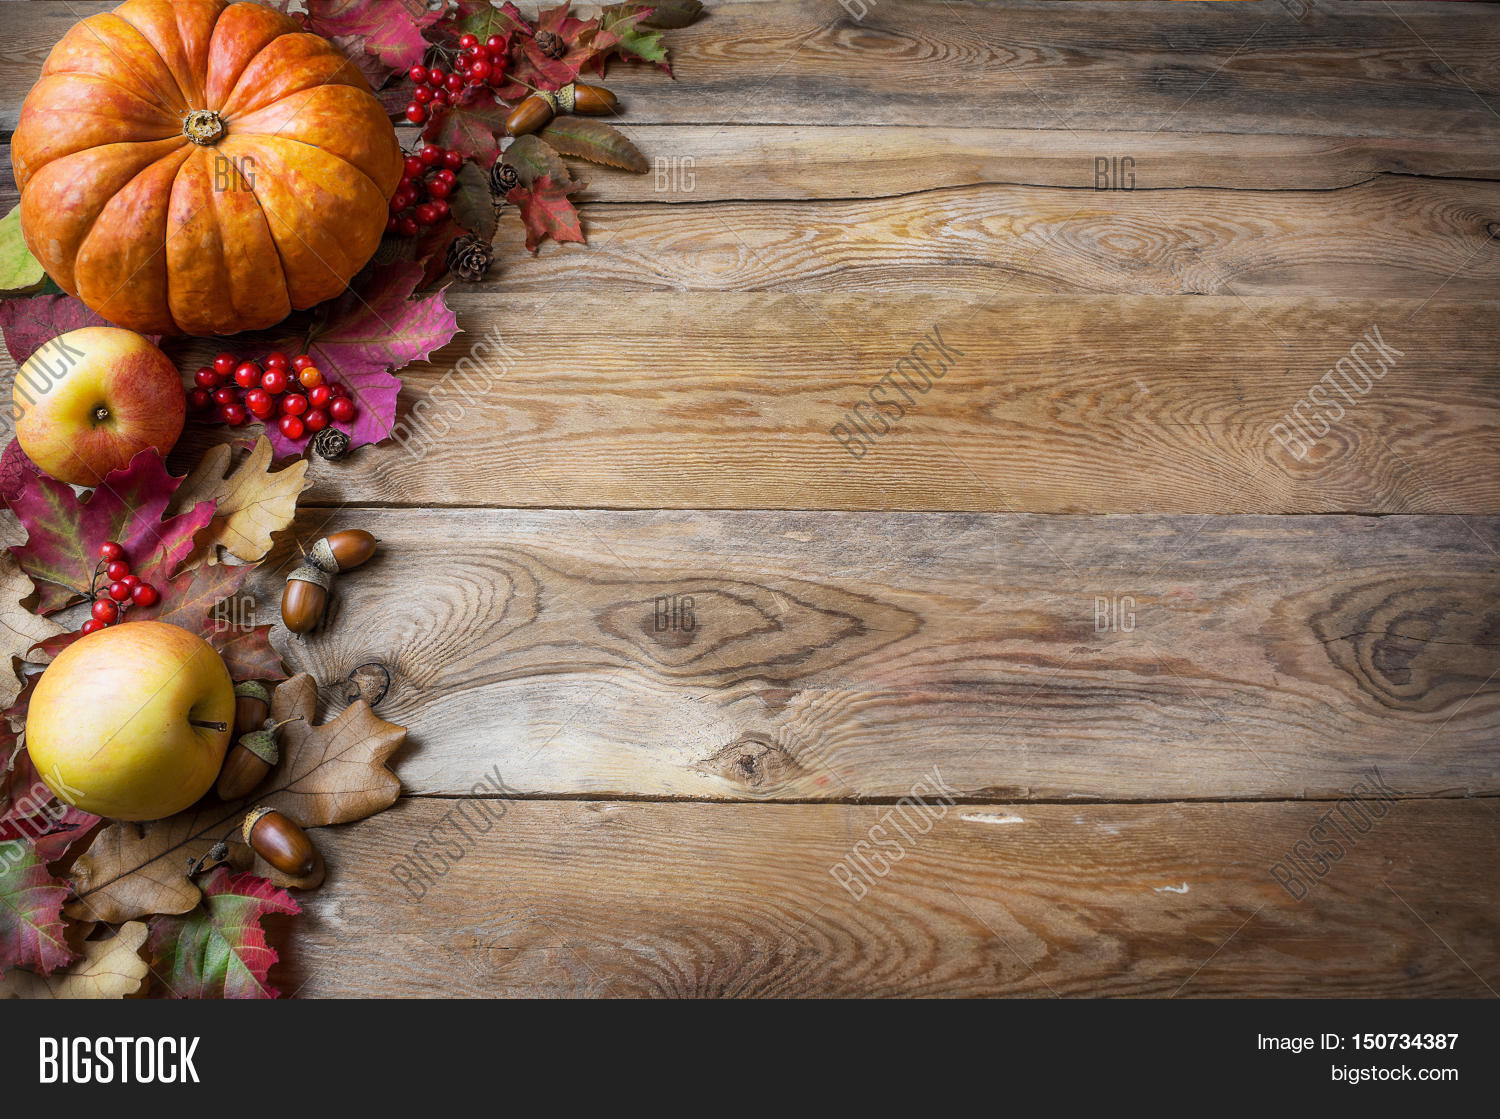 Thanksgiving Or Fall Greeting With Pumpkins And Fall